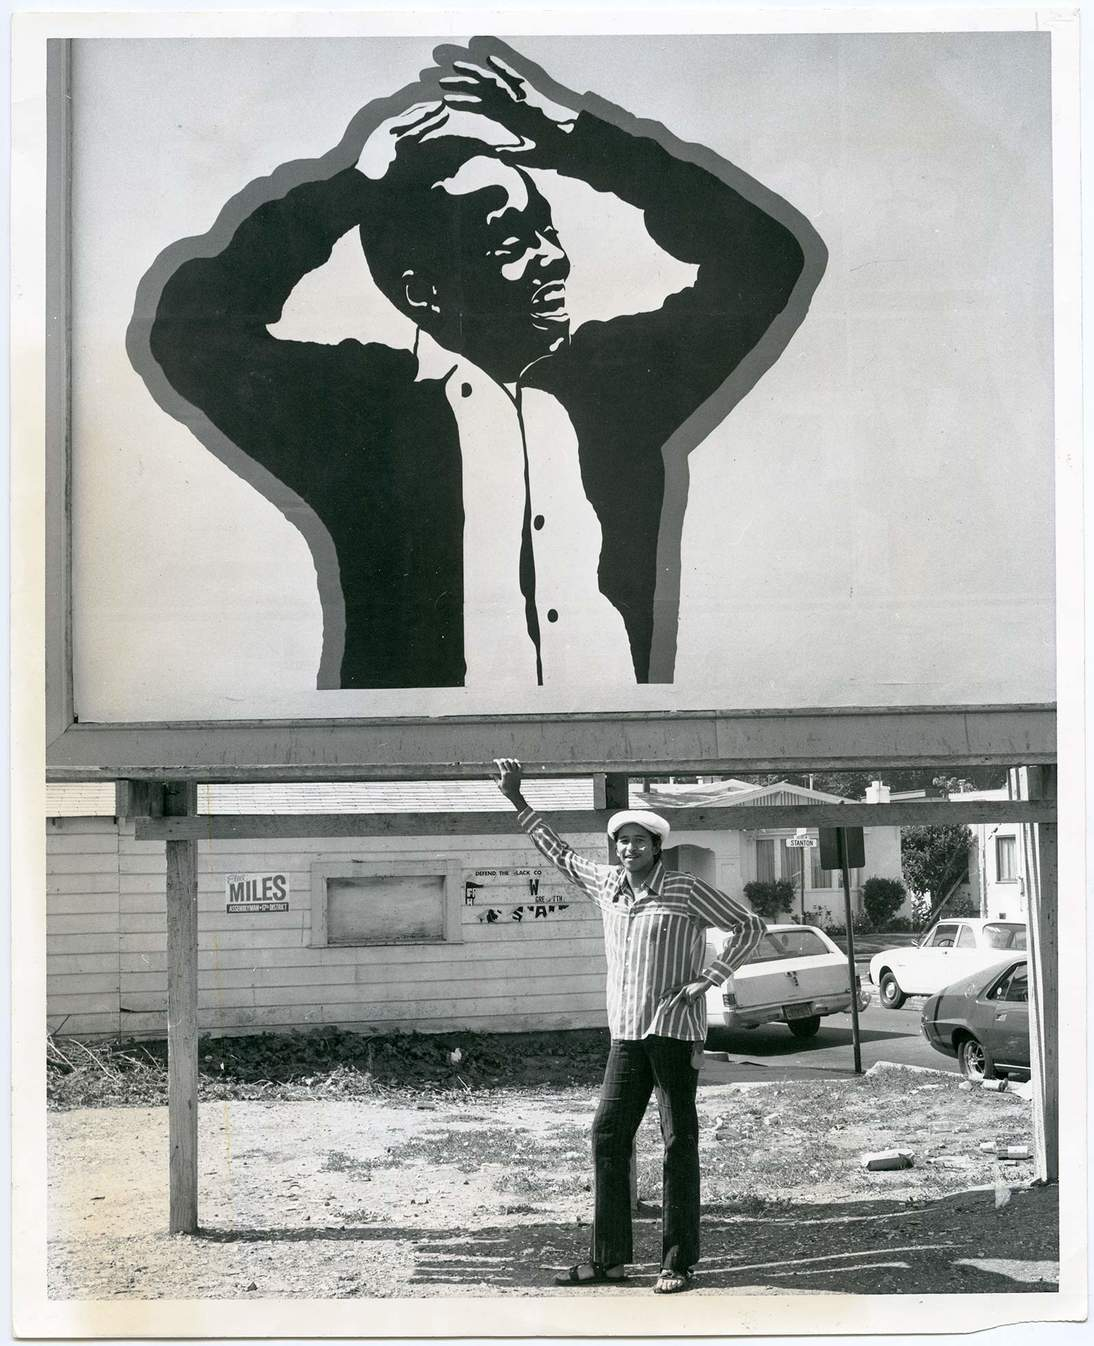 Cleveland Bellow photographed standing under his billboard, Oakland Post Photograph Collection, MS 169, African American Museum and Library at Oakland, Oakland Public Library